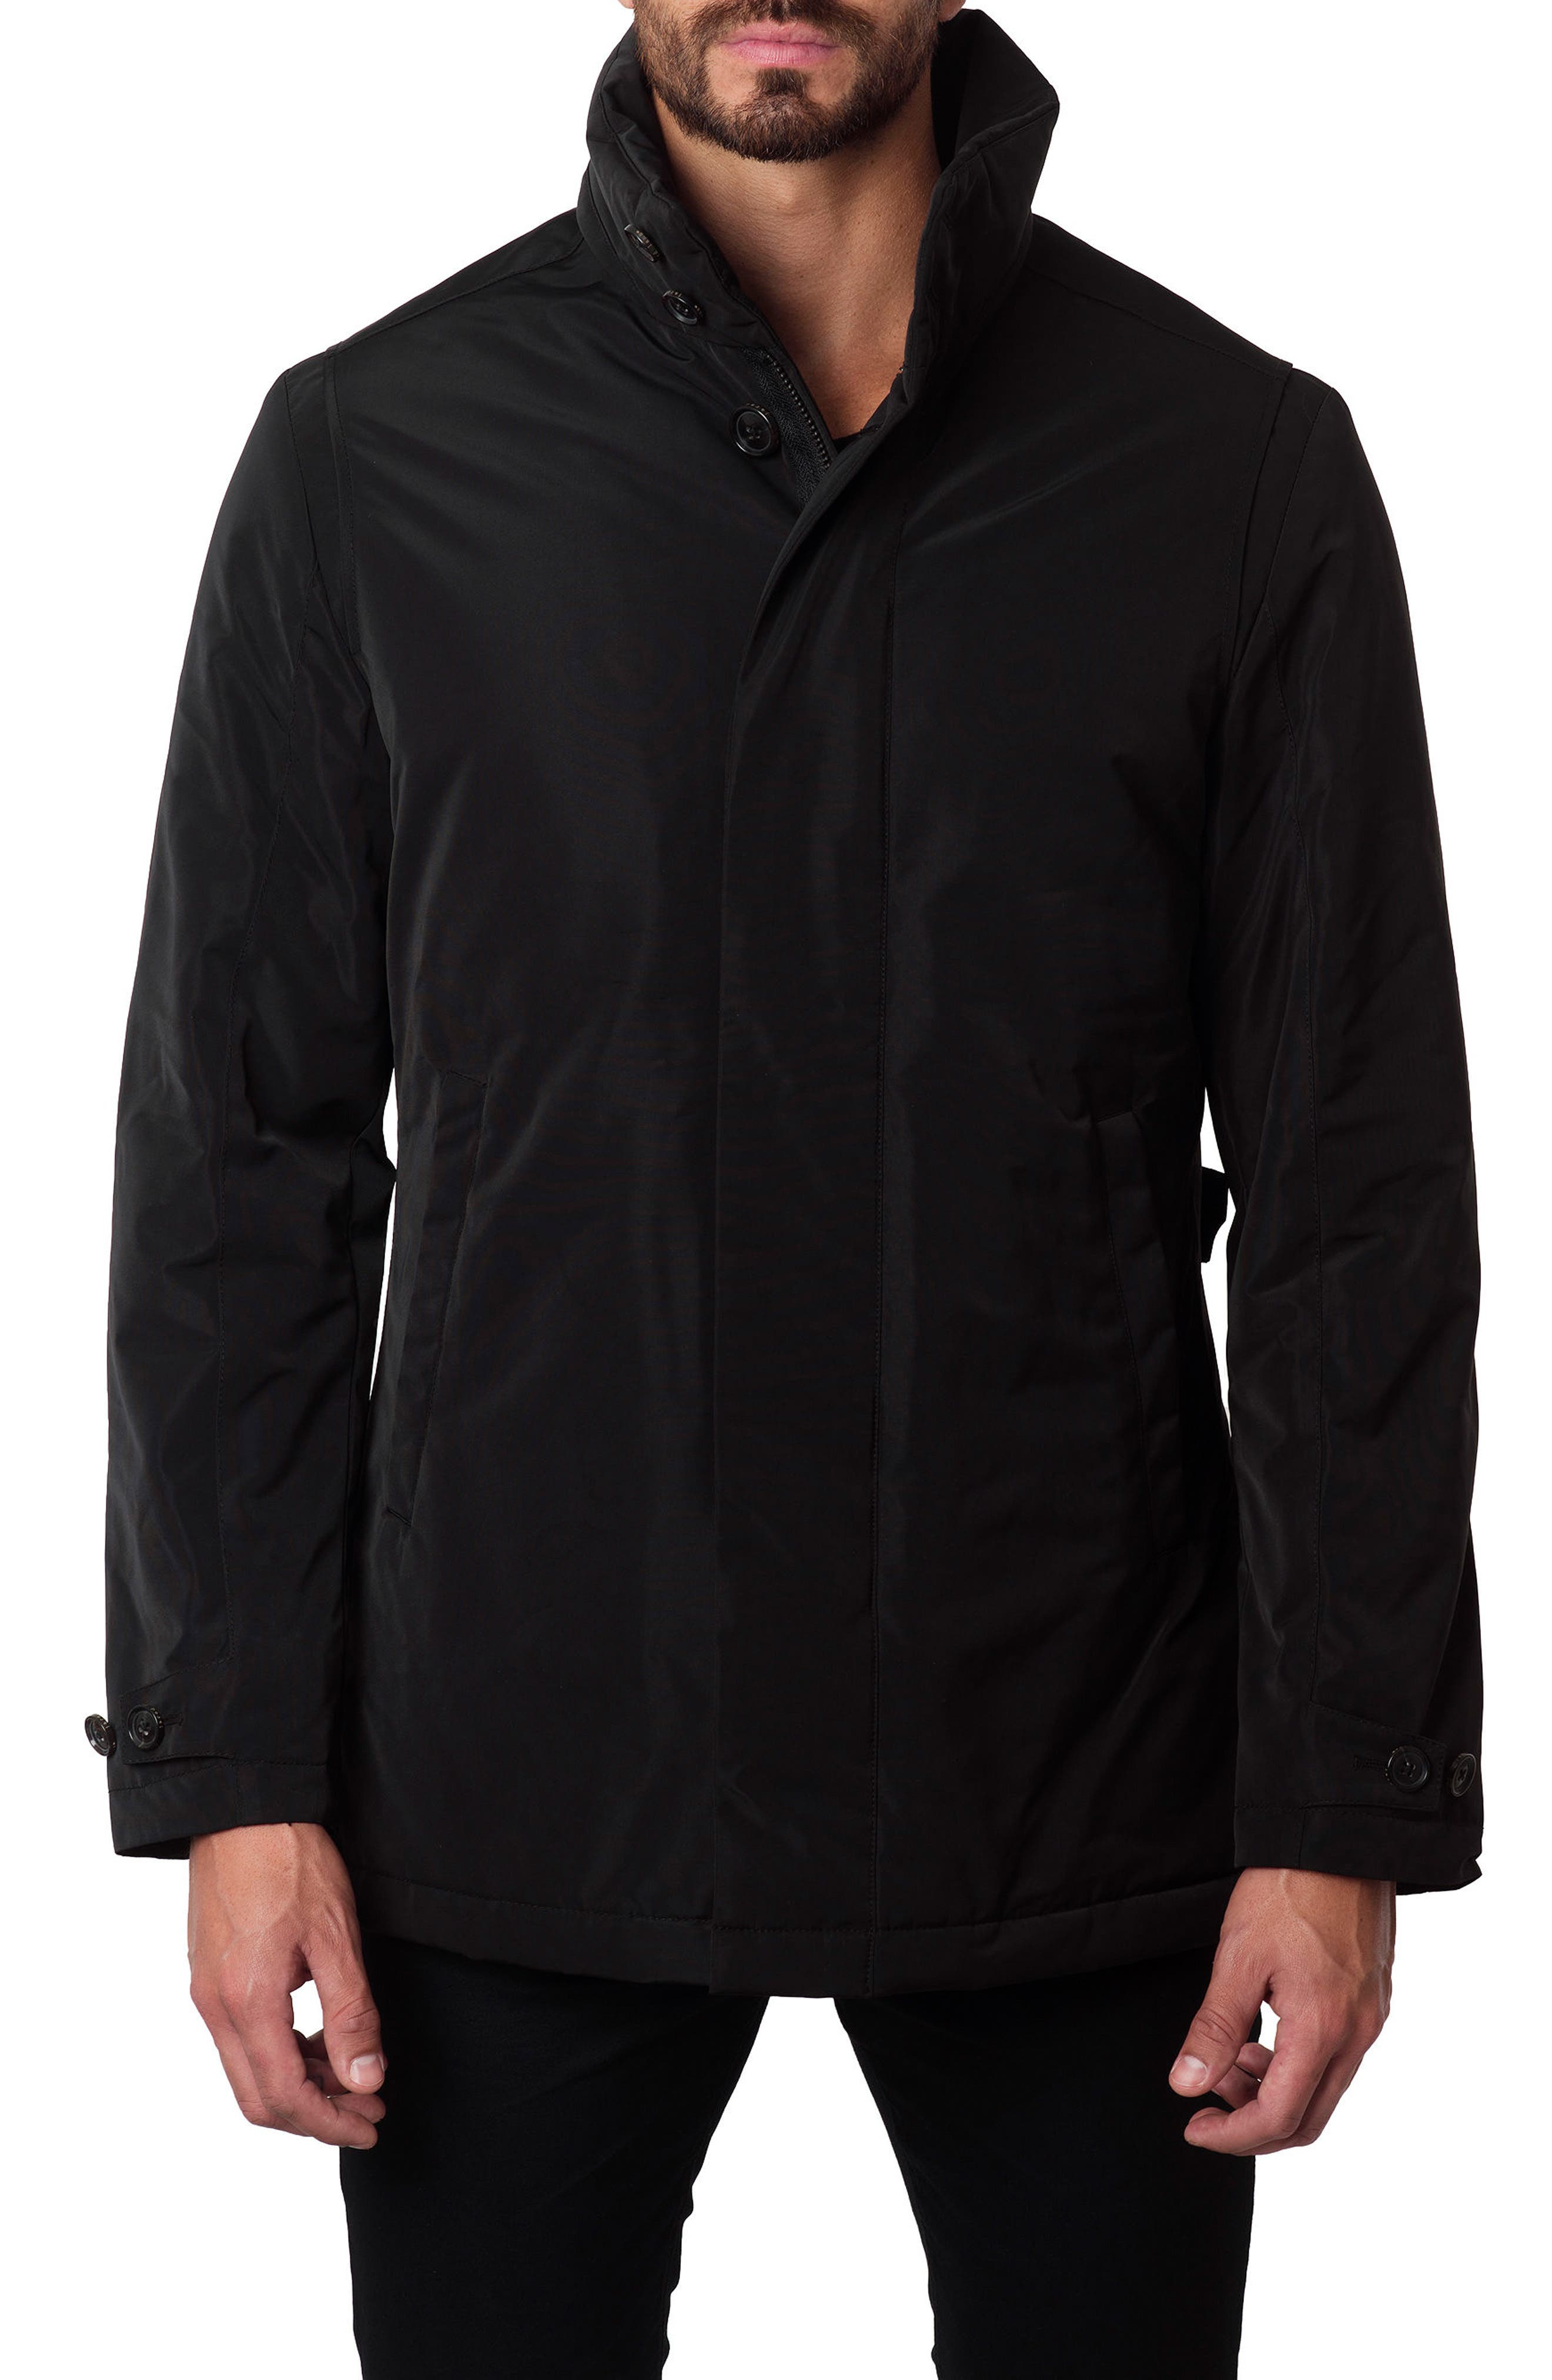 Alternate Image 1 Selected - Jared Lang Water-Repellent Jacket